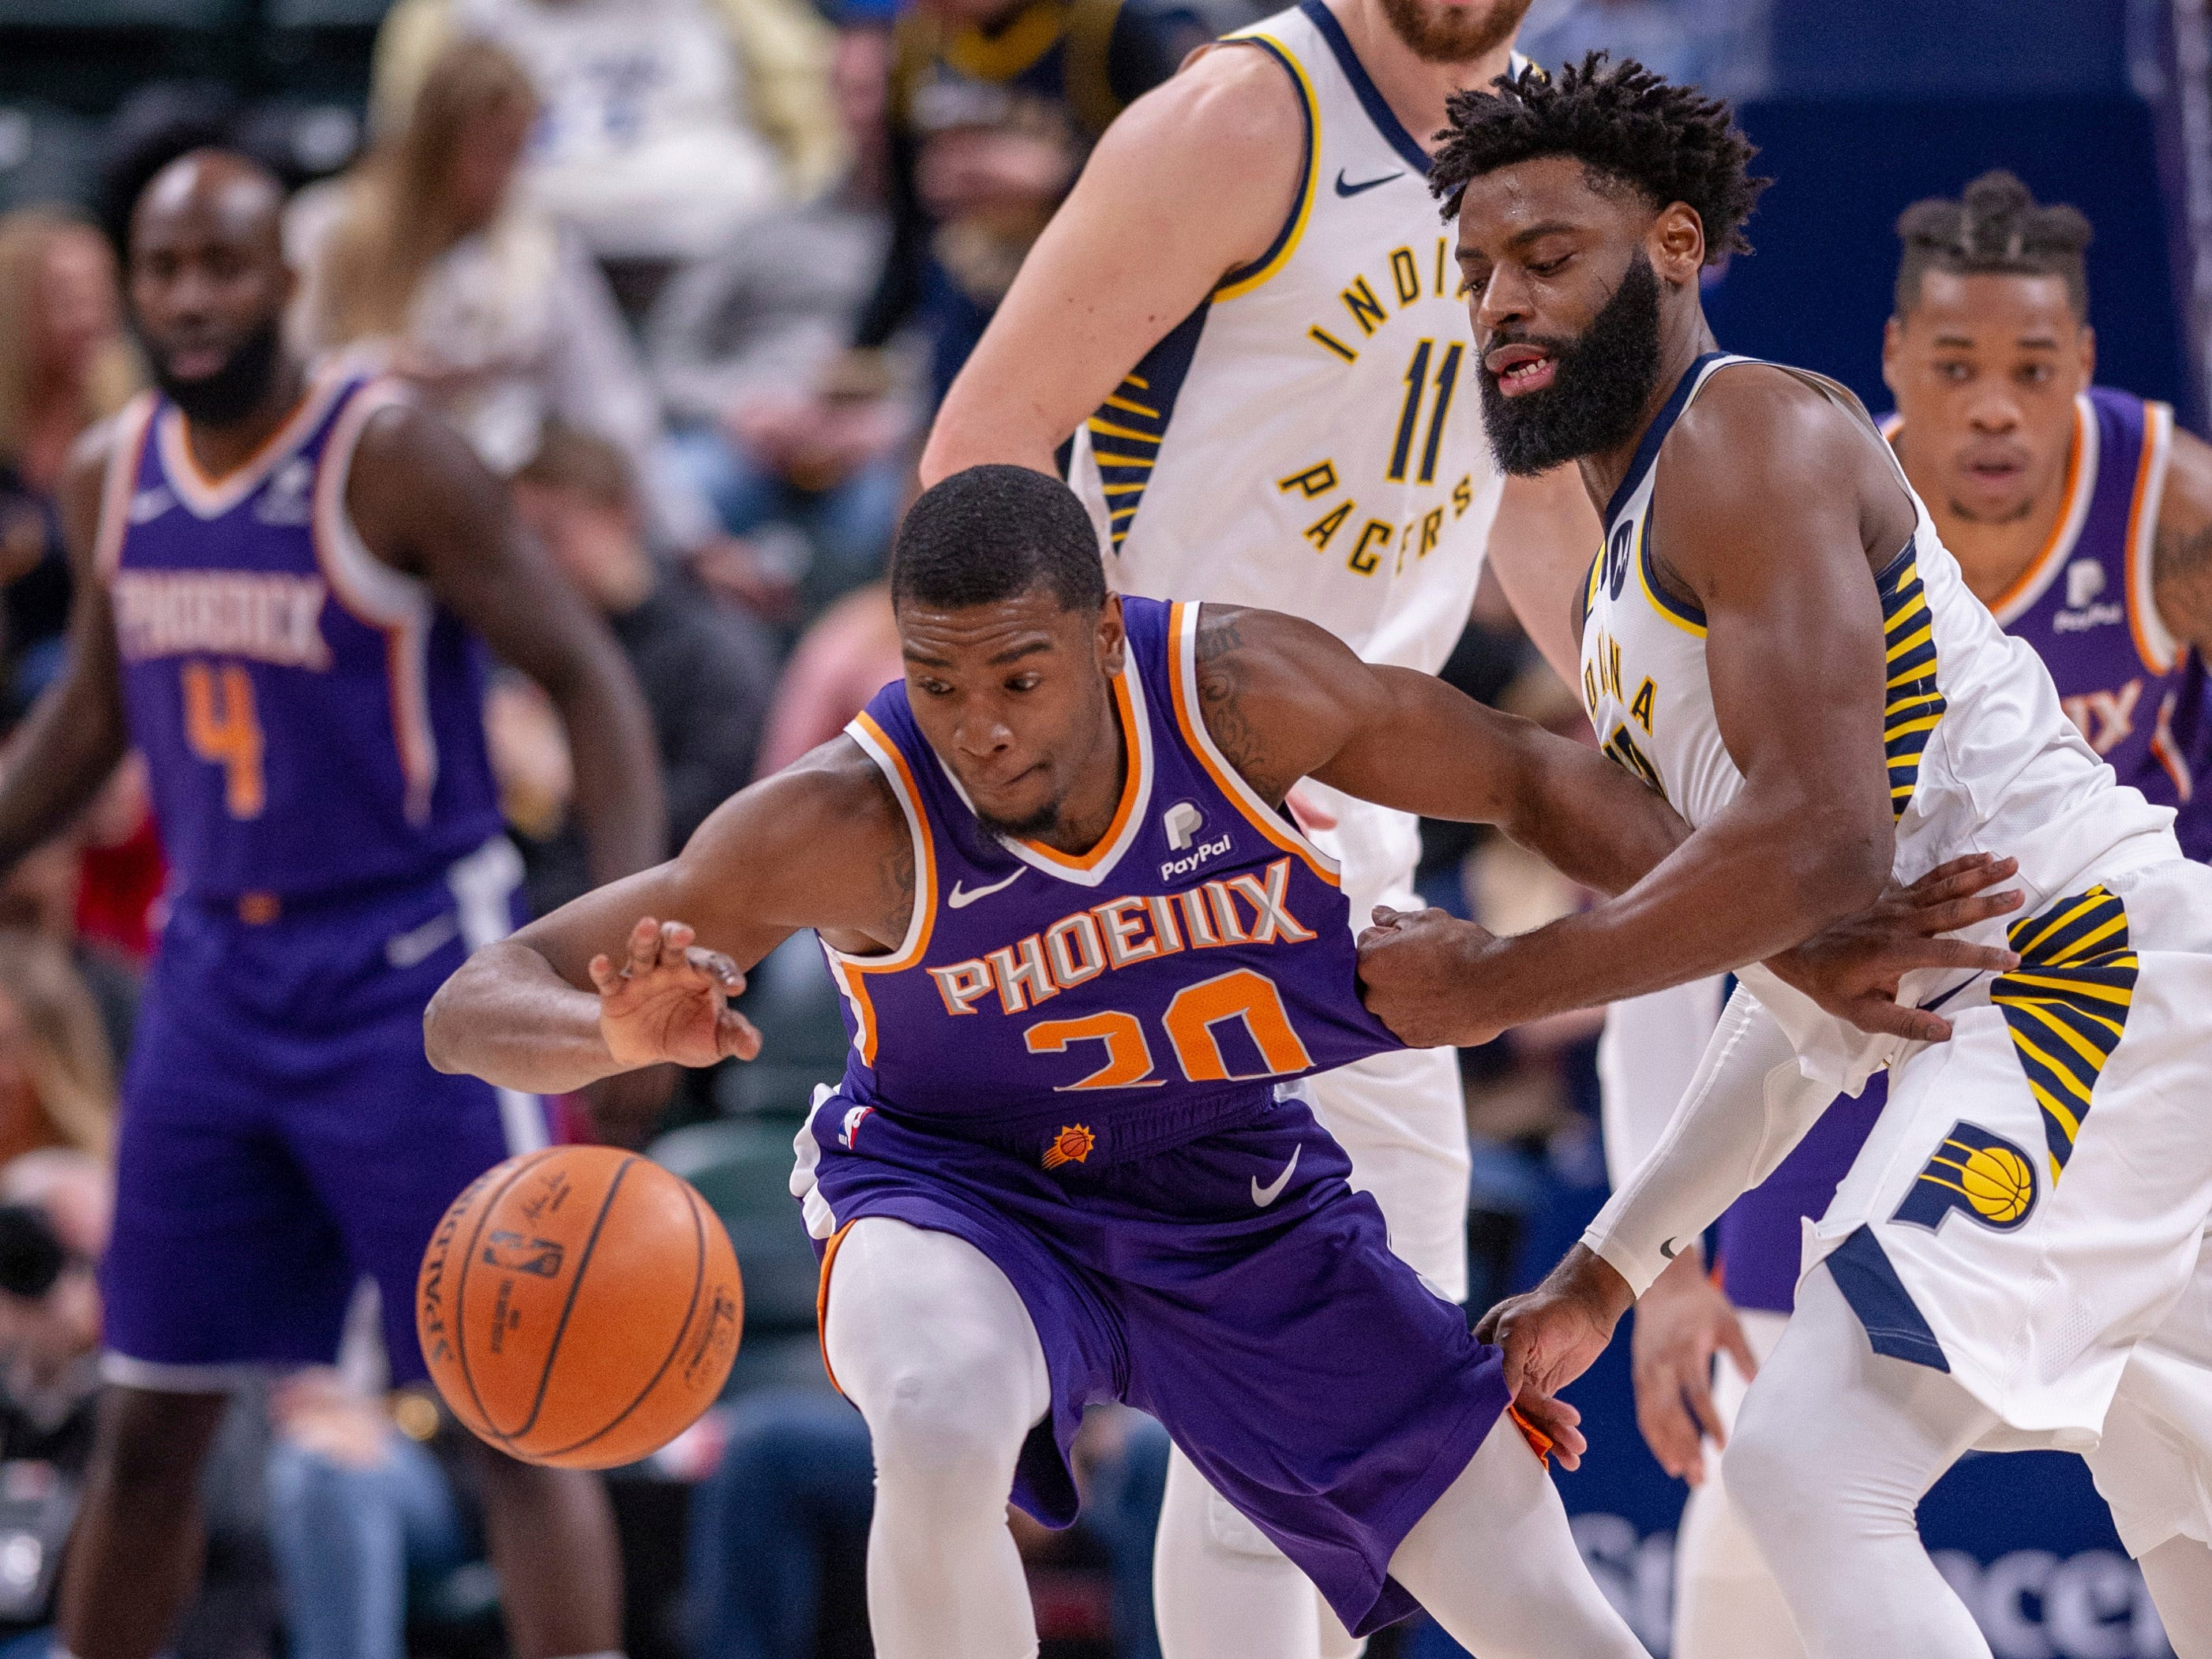 Phoenix Suns forward Josh Jackson (20) is pulled away from the loose ball by Indiana Pacers guard Tyreke Evans (12) during the first half of an NBA basketball game Tuesday, Jan. 15, 2019, in Indianapolis.